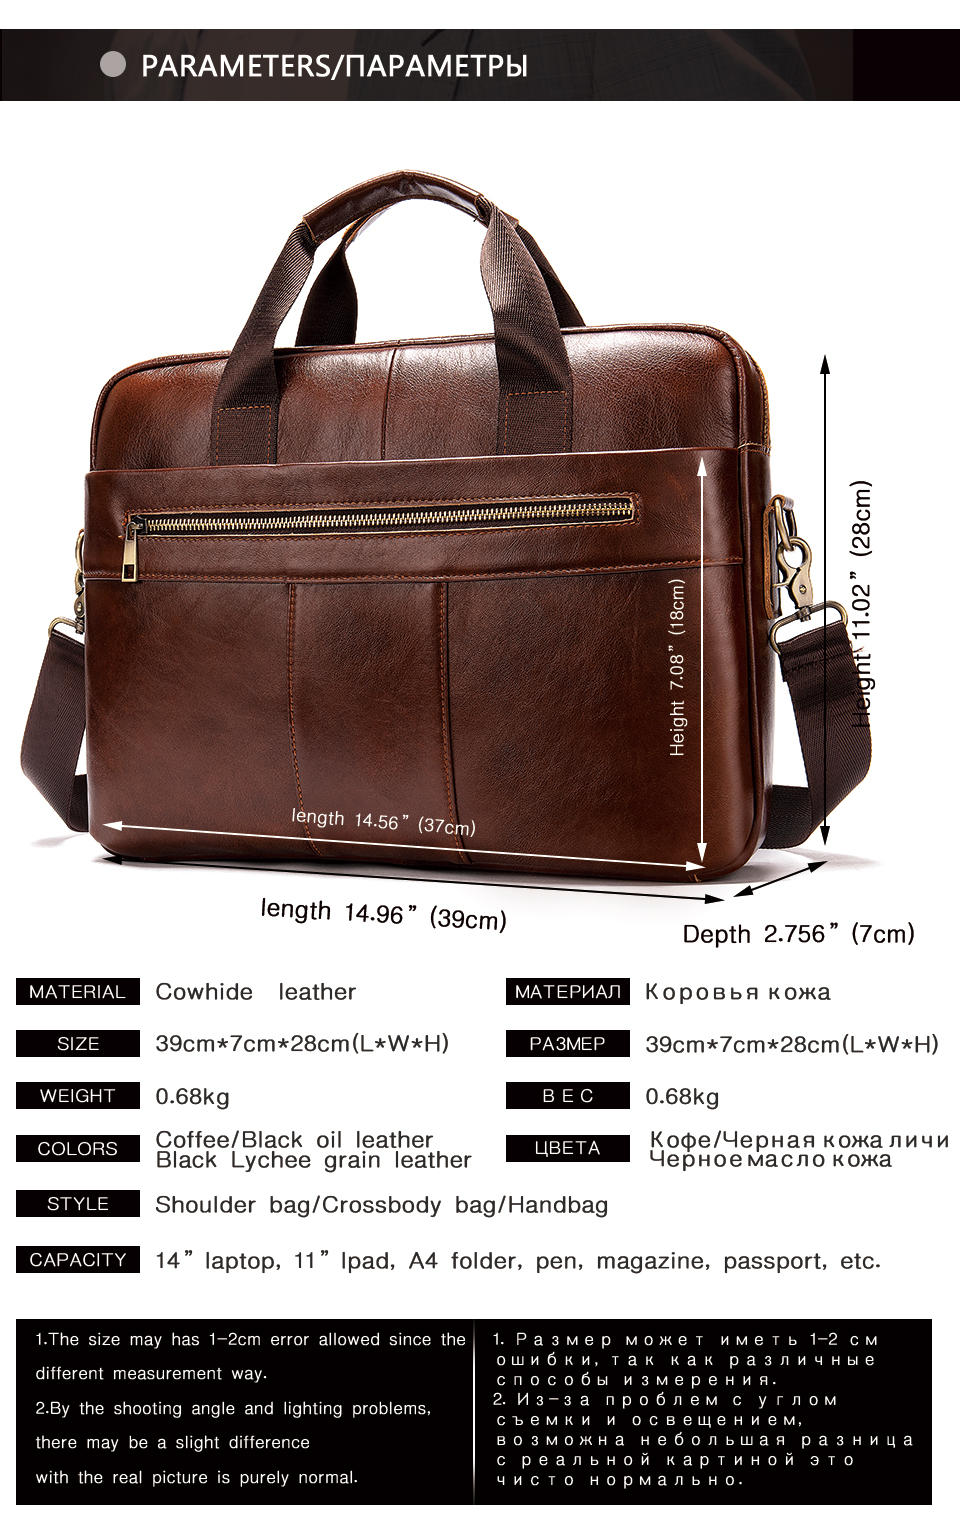 H628d0c3a25a94ae6a57074ae07bb3debz WESTAL Men's Briefcase Men's Bag Genuine Leather Laptop Bag Leather Computer/Office Bags for Men Document Briefcases Totes Bags